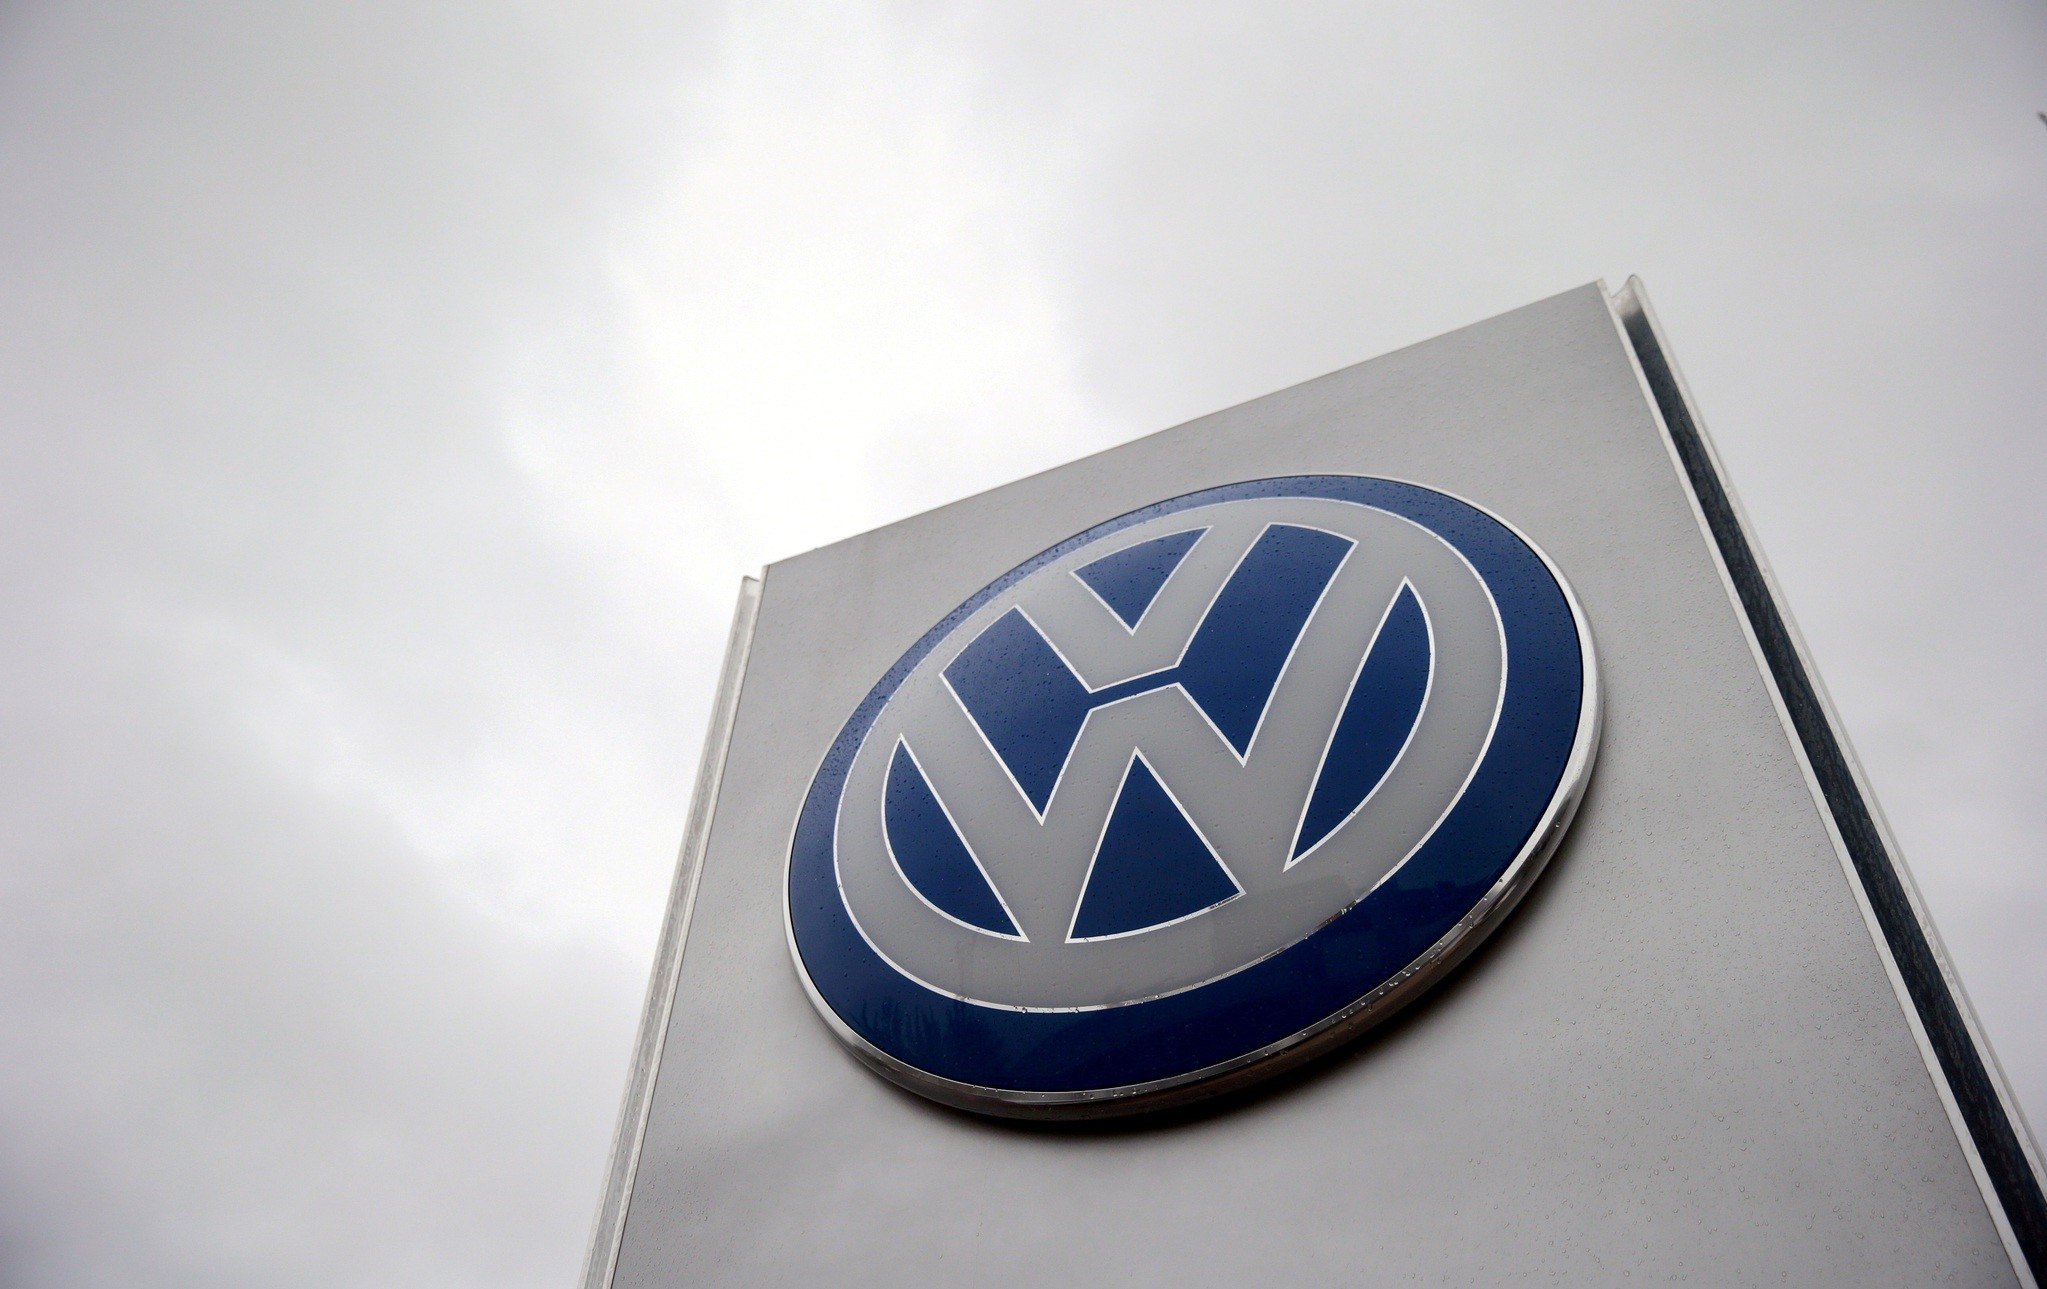 A VW sign is seen outside a Volkswagen dealership in London, Britain, November 5, 2015. (REUTERS Photo)